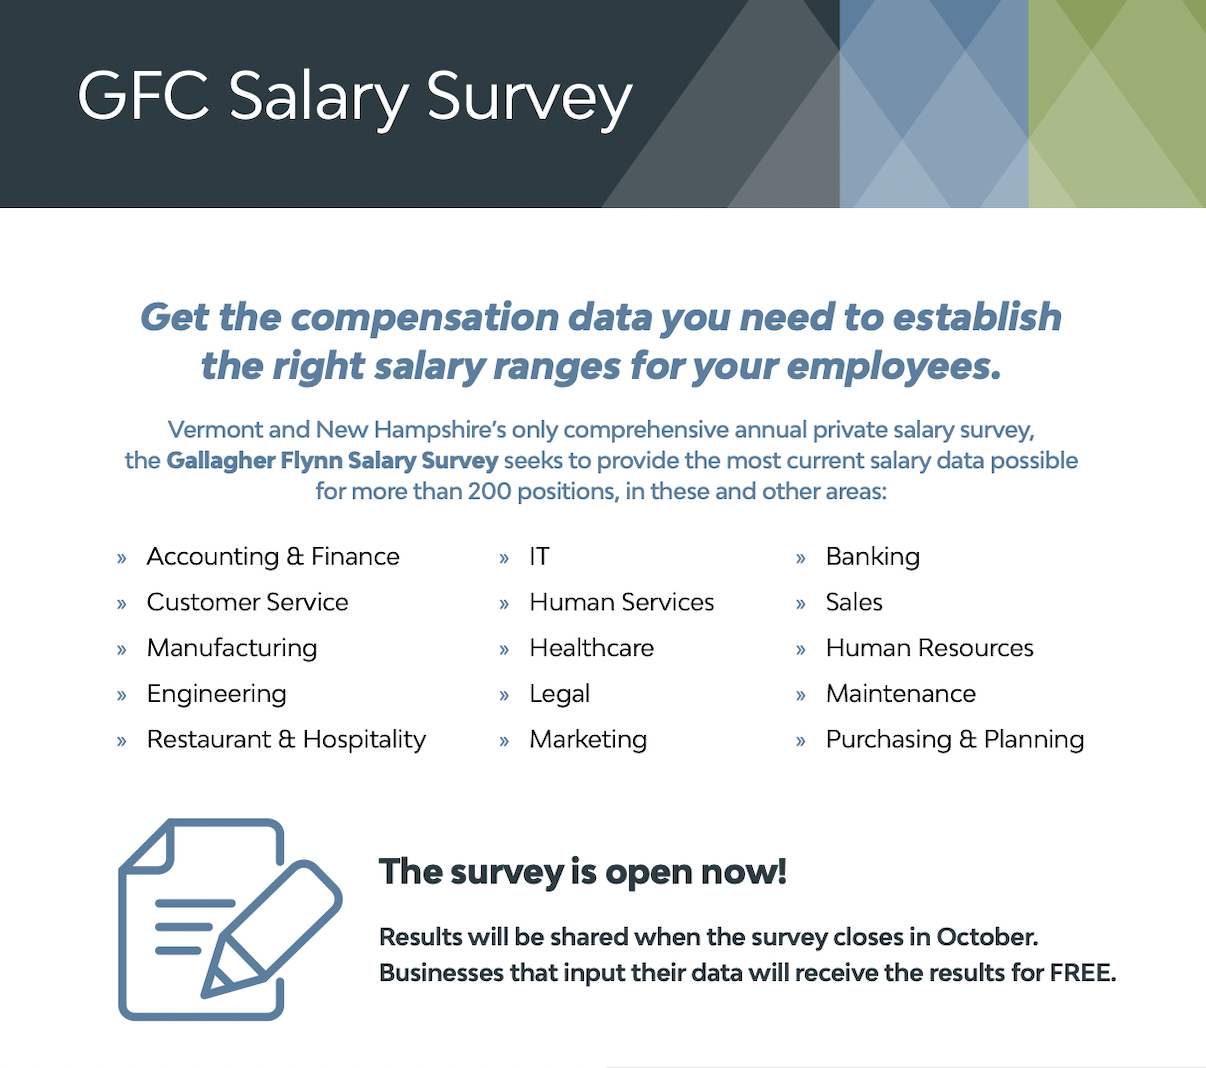 Gallagher Flynn salary survey: Get the compensation data you need to establish the right salary ranges for your employees. Vermont and New Hampshire's only comprehensive annual private salary survey, the Gallagher Flynn Salary Survey seeks to provide the most current salary data possible for more then 200 positions, in these and other areas: Accounting & Finance Customer Service Manufacturing Engineering Restaurant & hospitality IT Human Services Healthcare Legal Marketing Banking Sales Human Resources Maintenance Purchasing & Planning. The survey is open now! Results will be shared when the survey closes down in October. Businesses that input their data will receive the results for FREE.